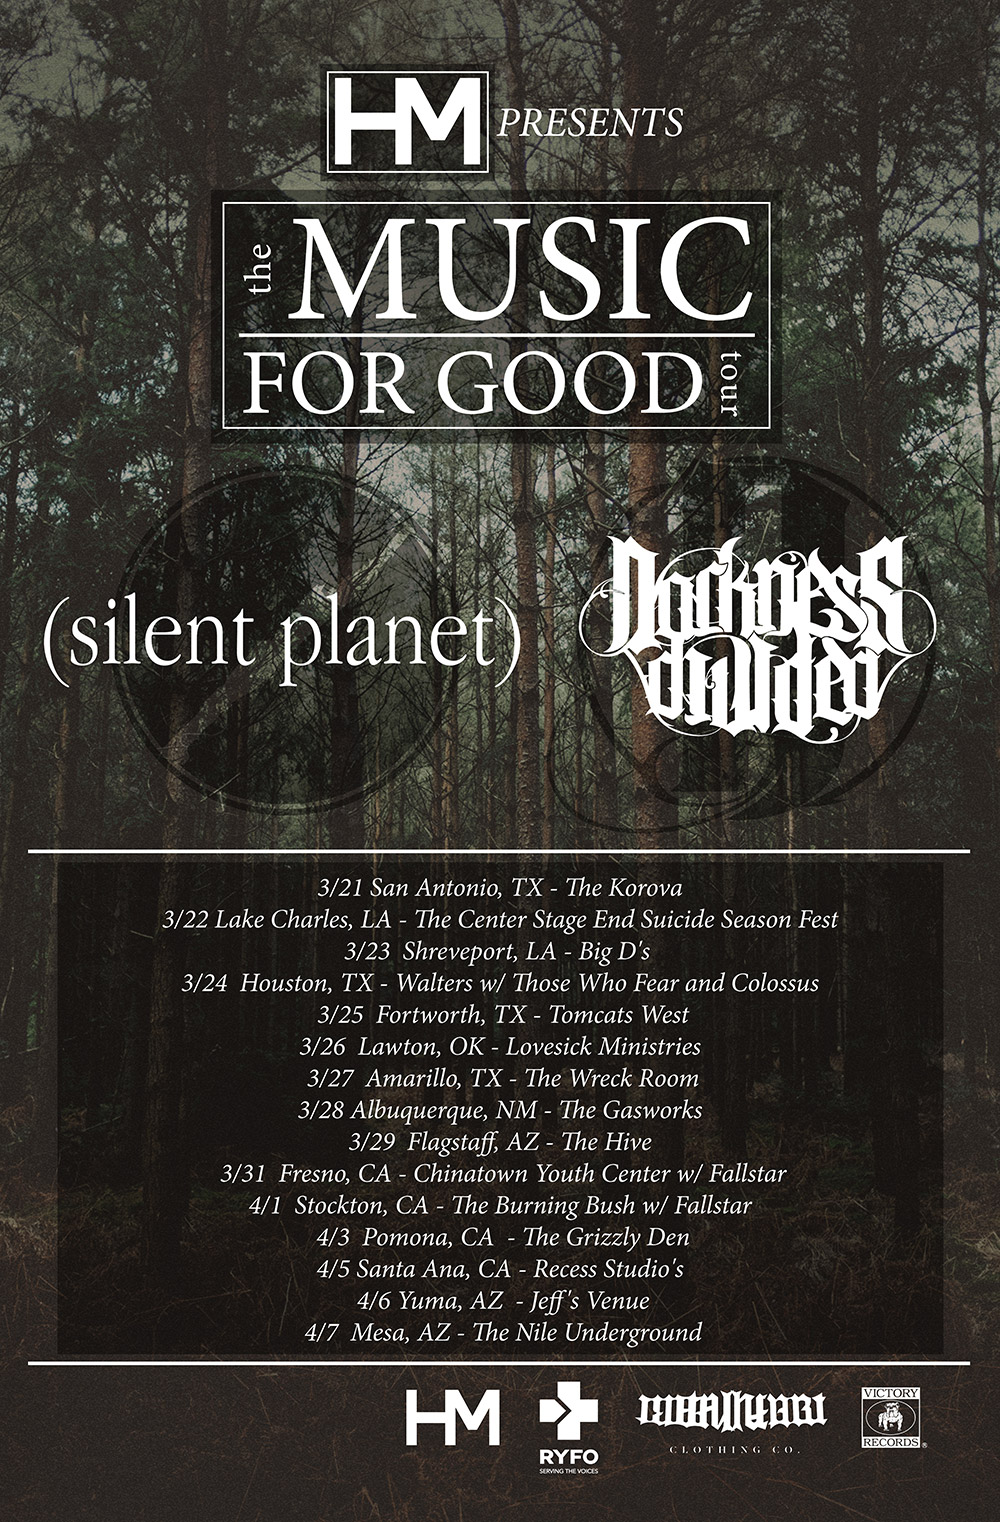 HM's Music for Good Tour 2014